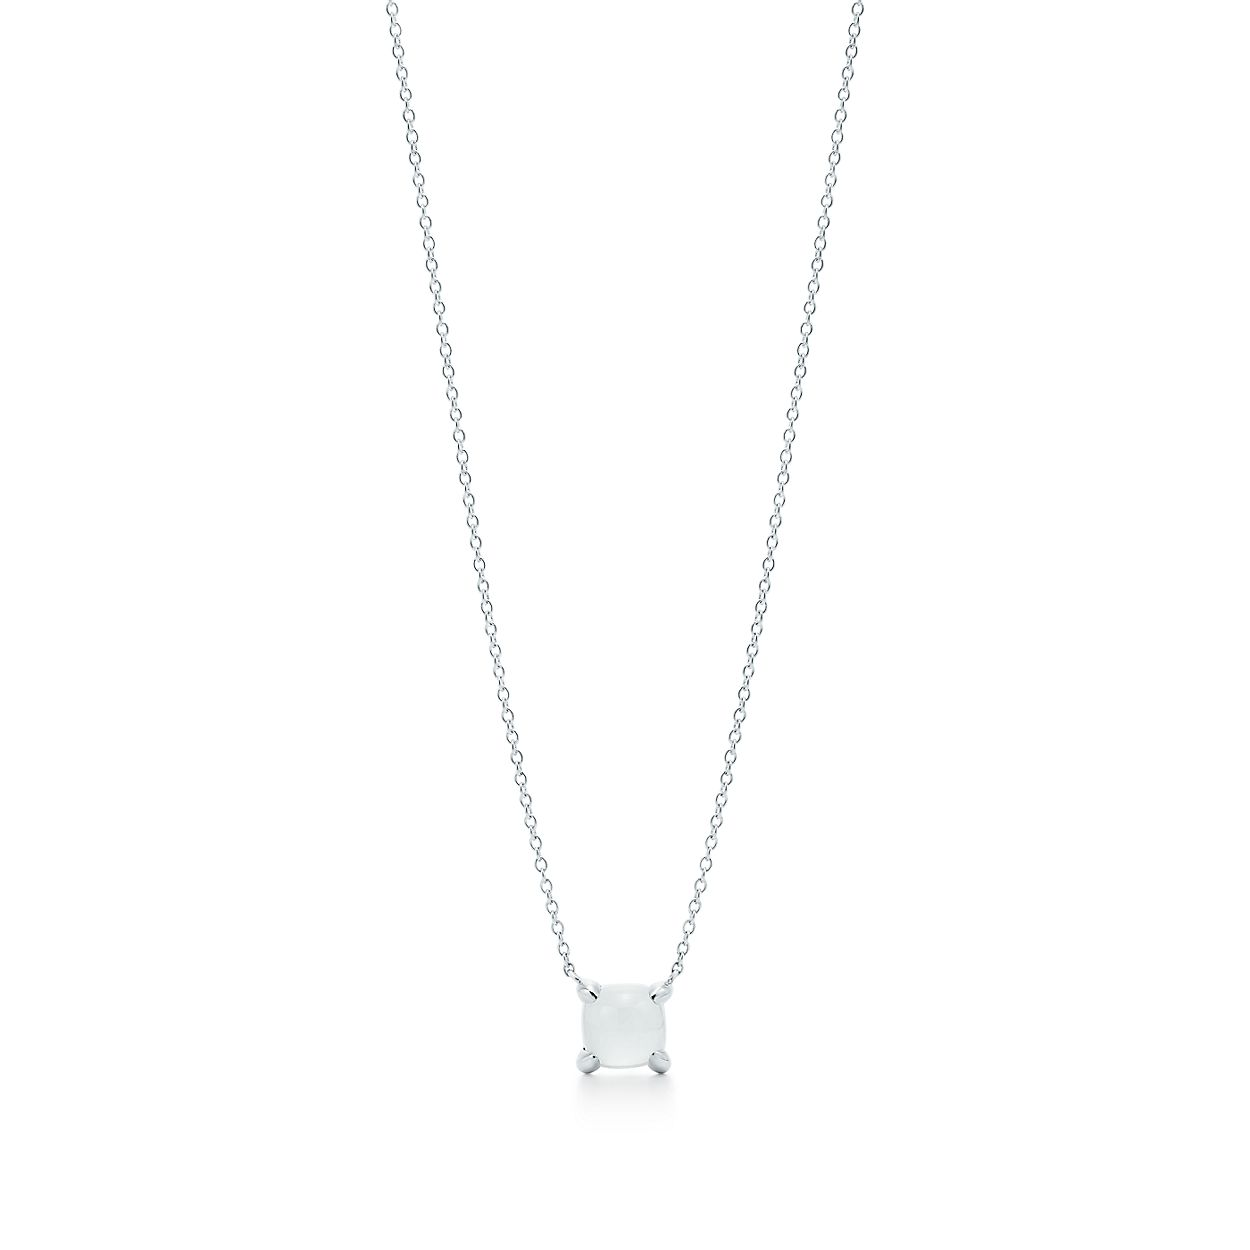 8784a2545 Paloma's Sugar Stacks pendant in sterling silver with a milky quartz ...